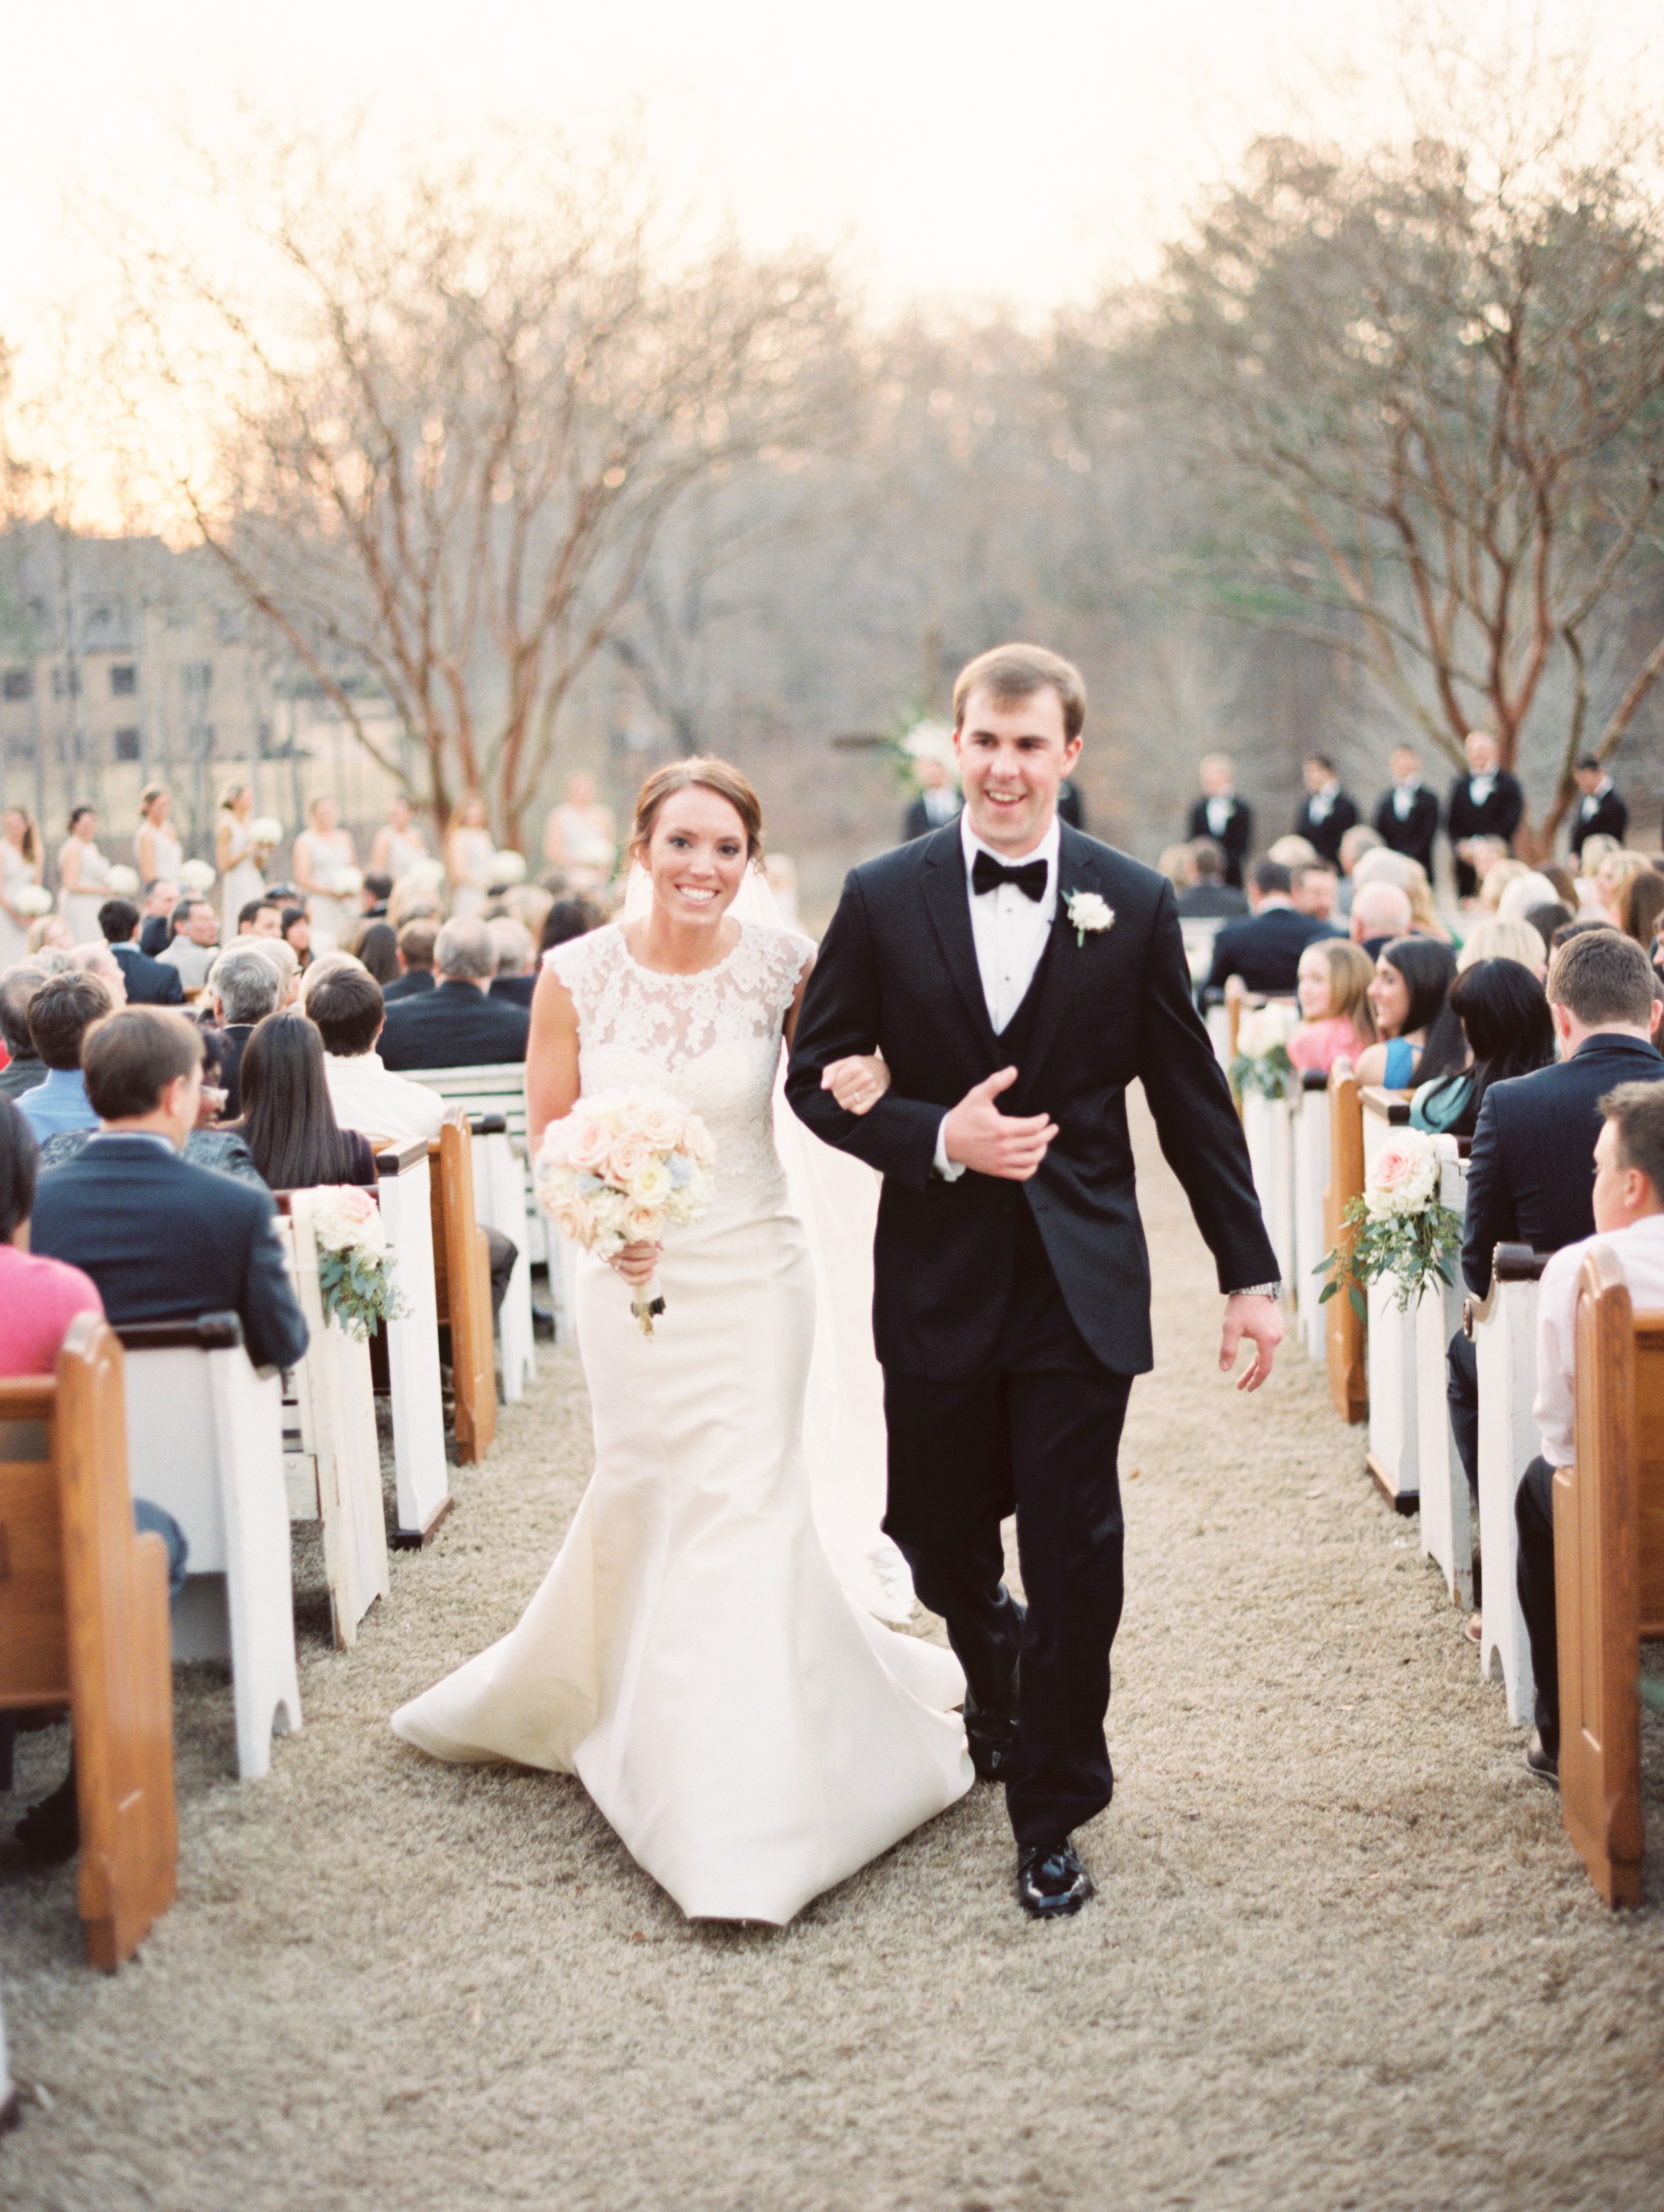 Pews at a Southern Wedding. Photos by Taylor Lord Phtography